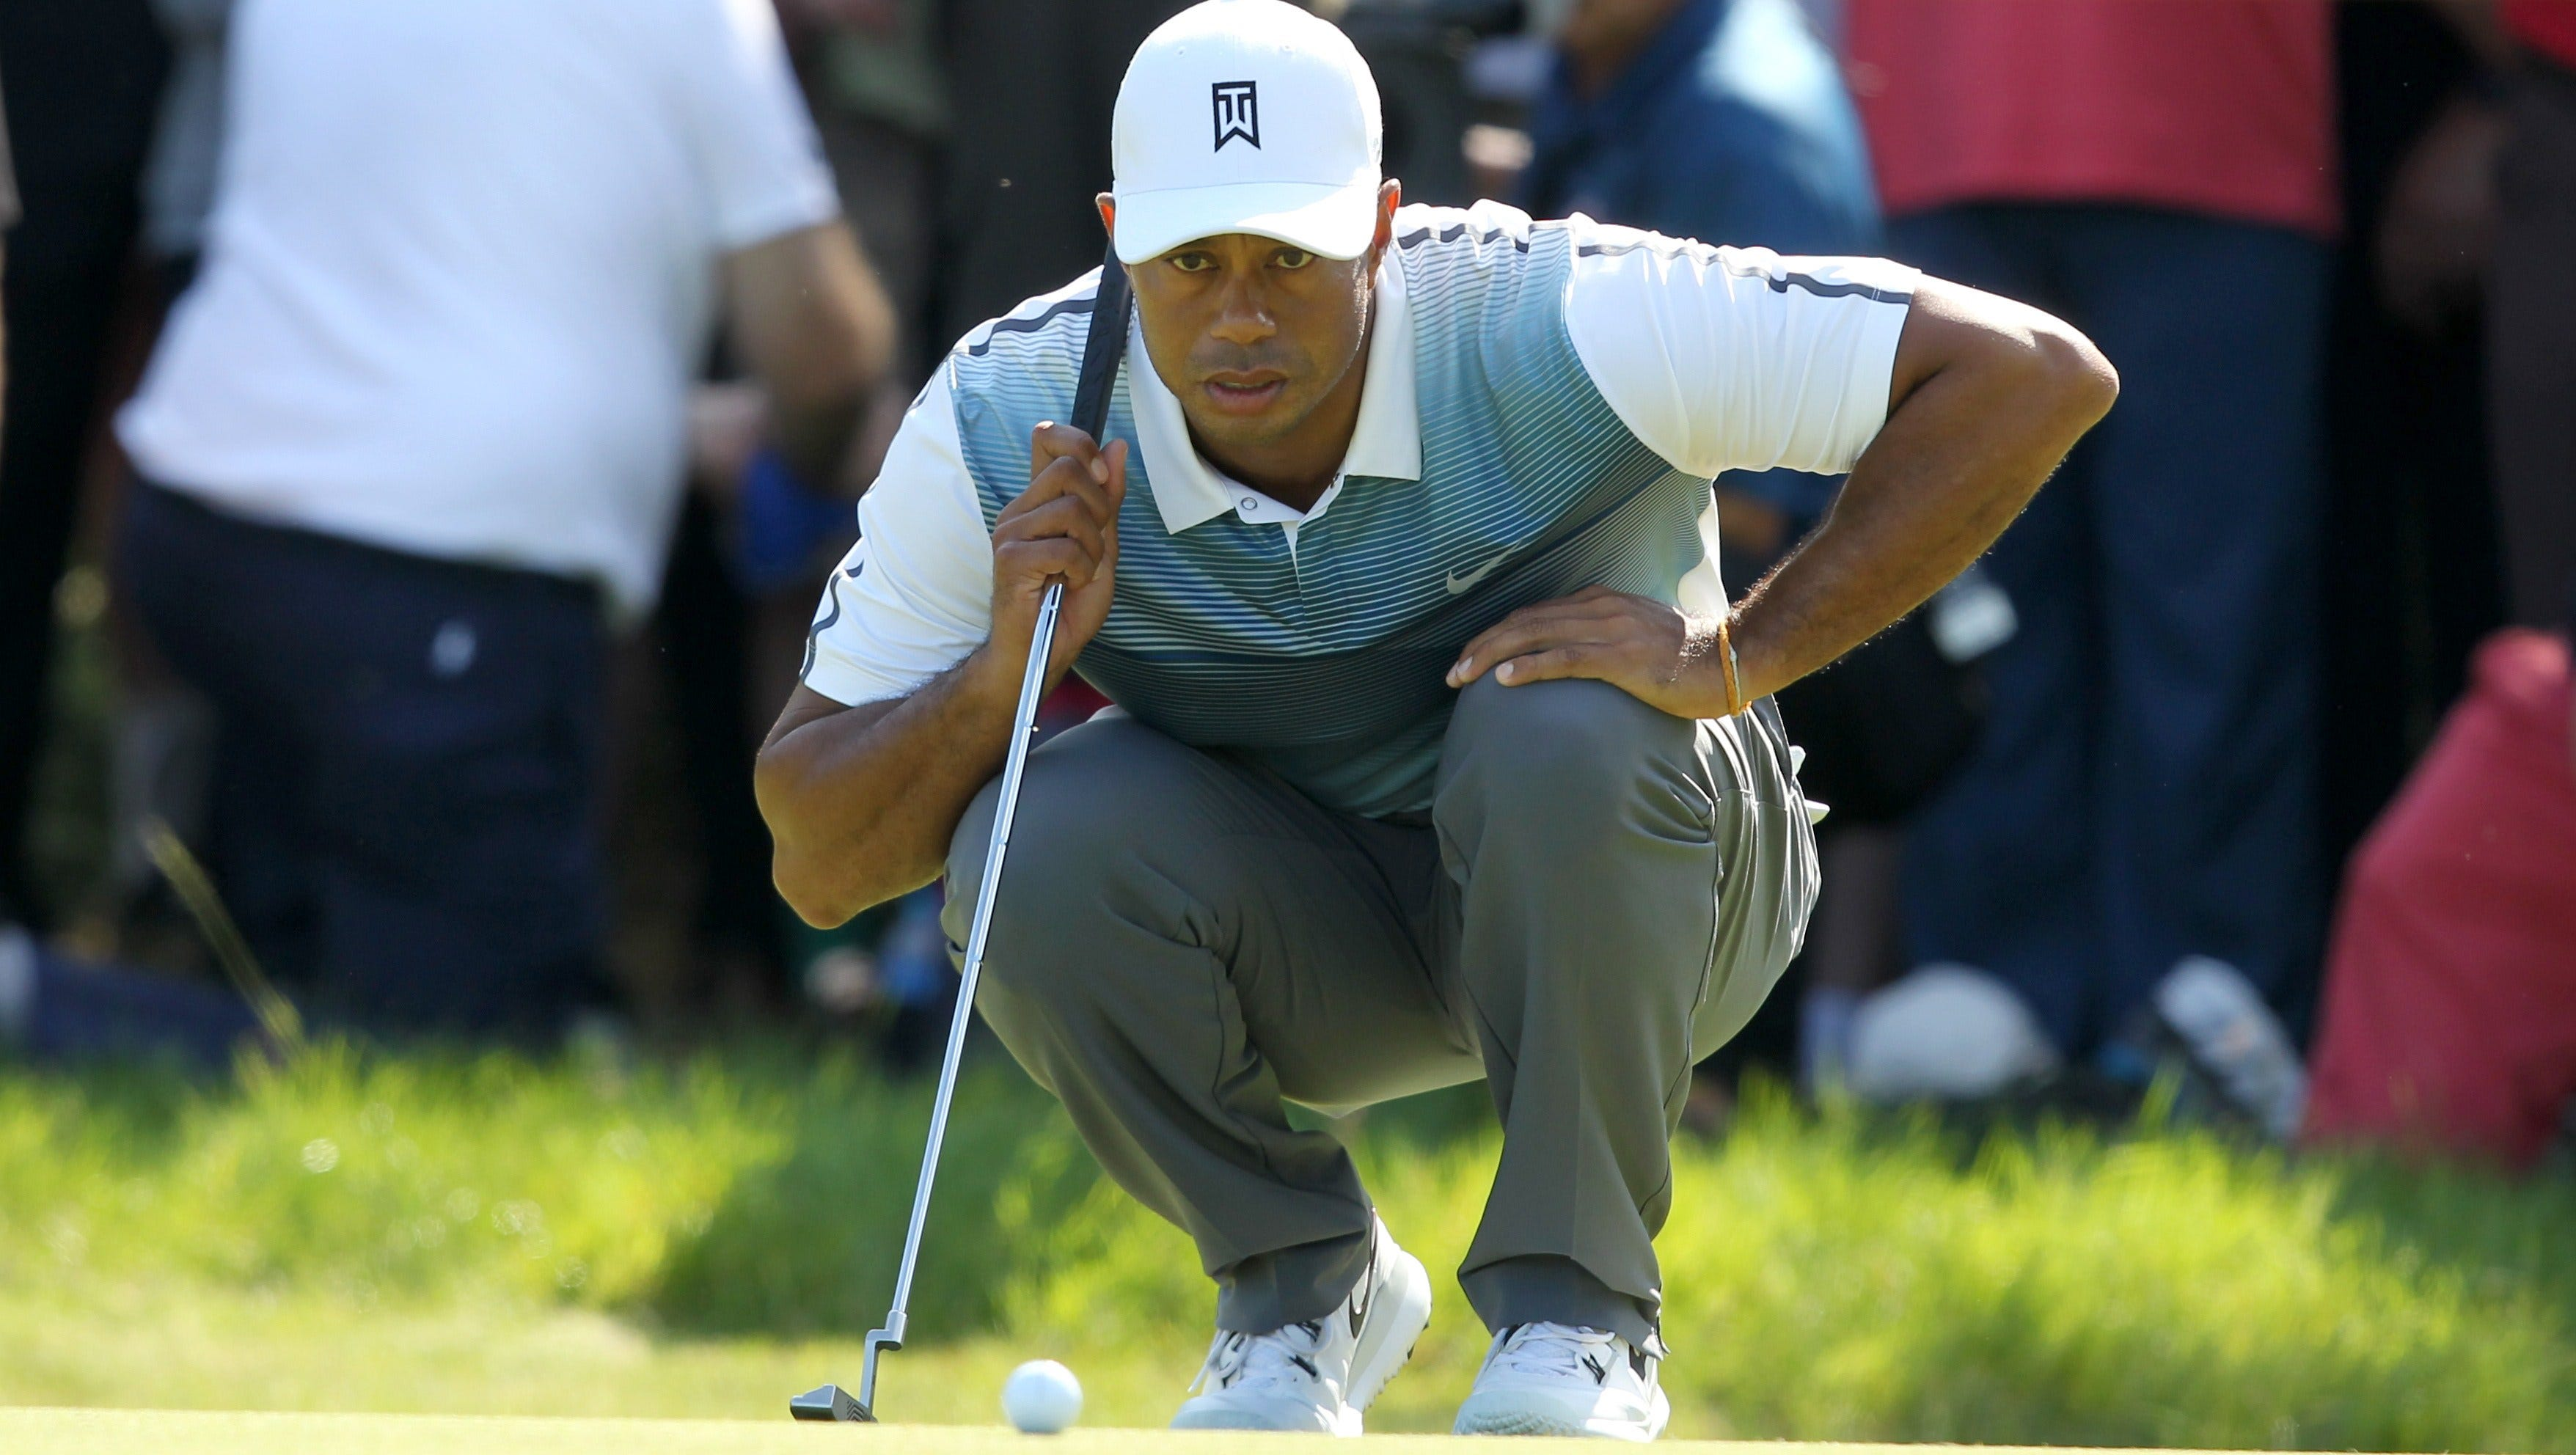 tiger woods starts slow but rolls to an opening 69 at british open